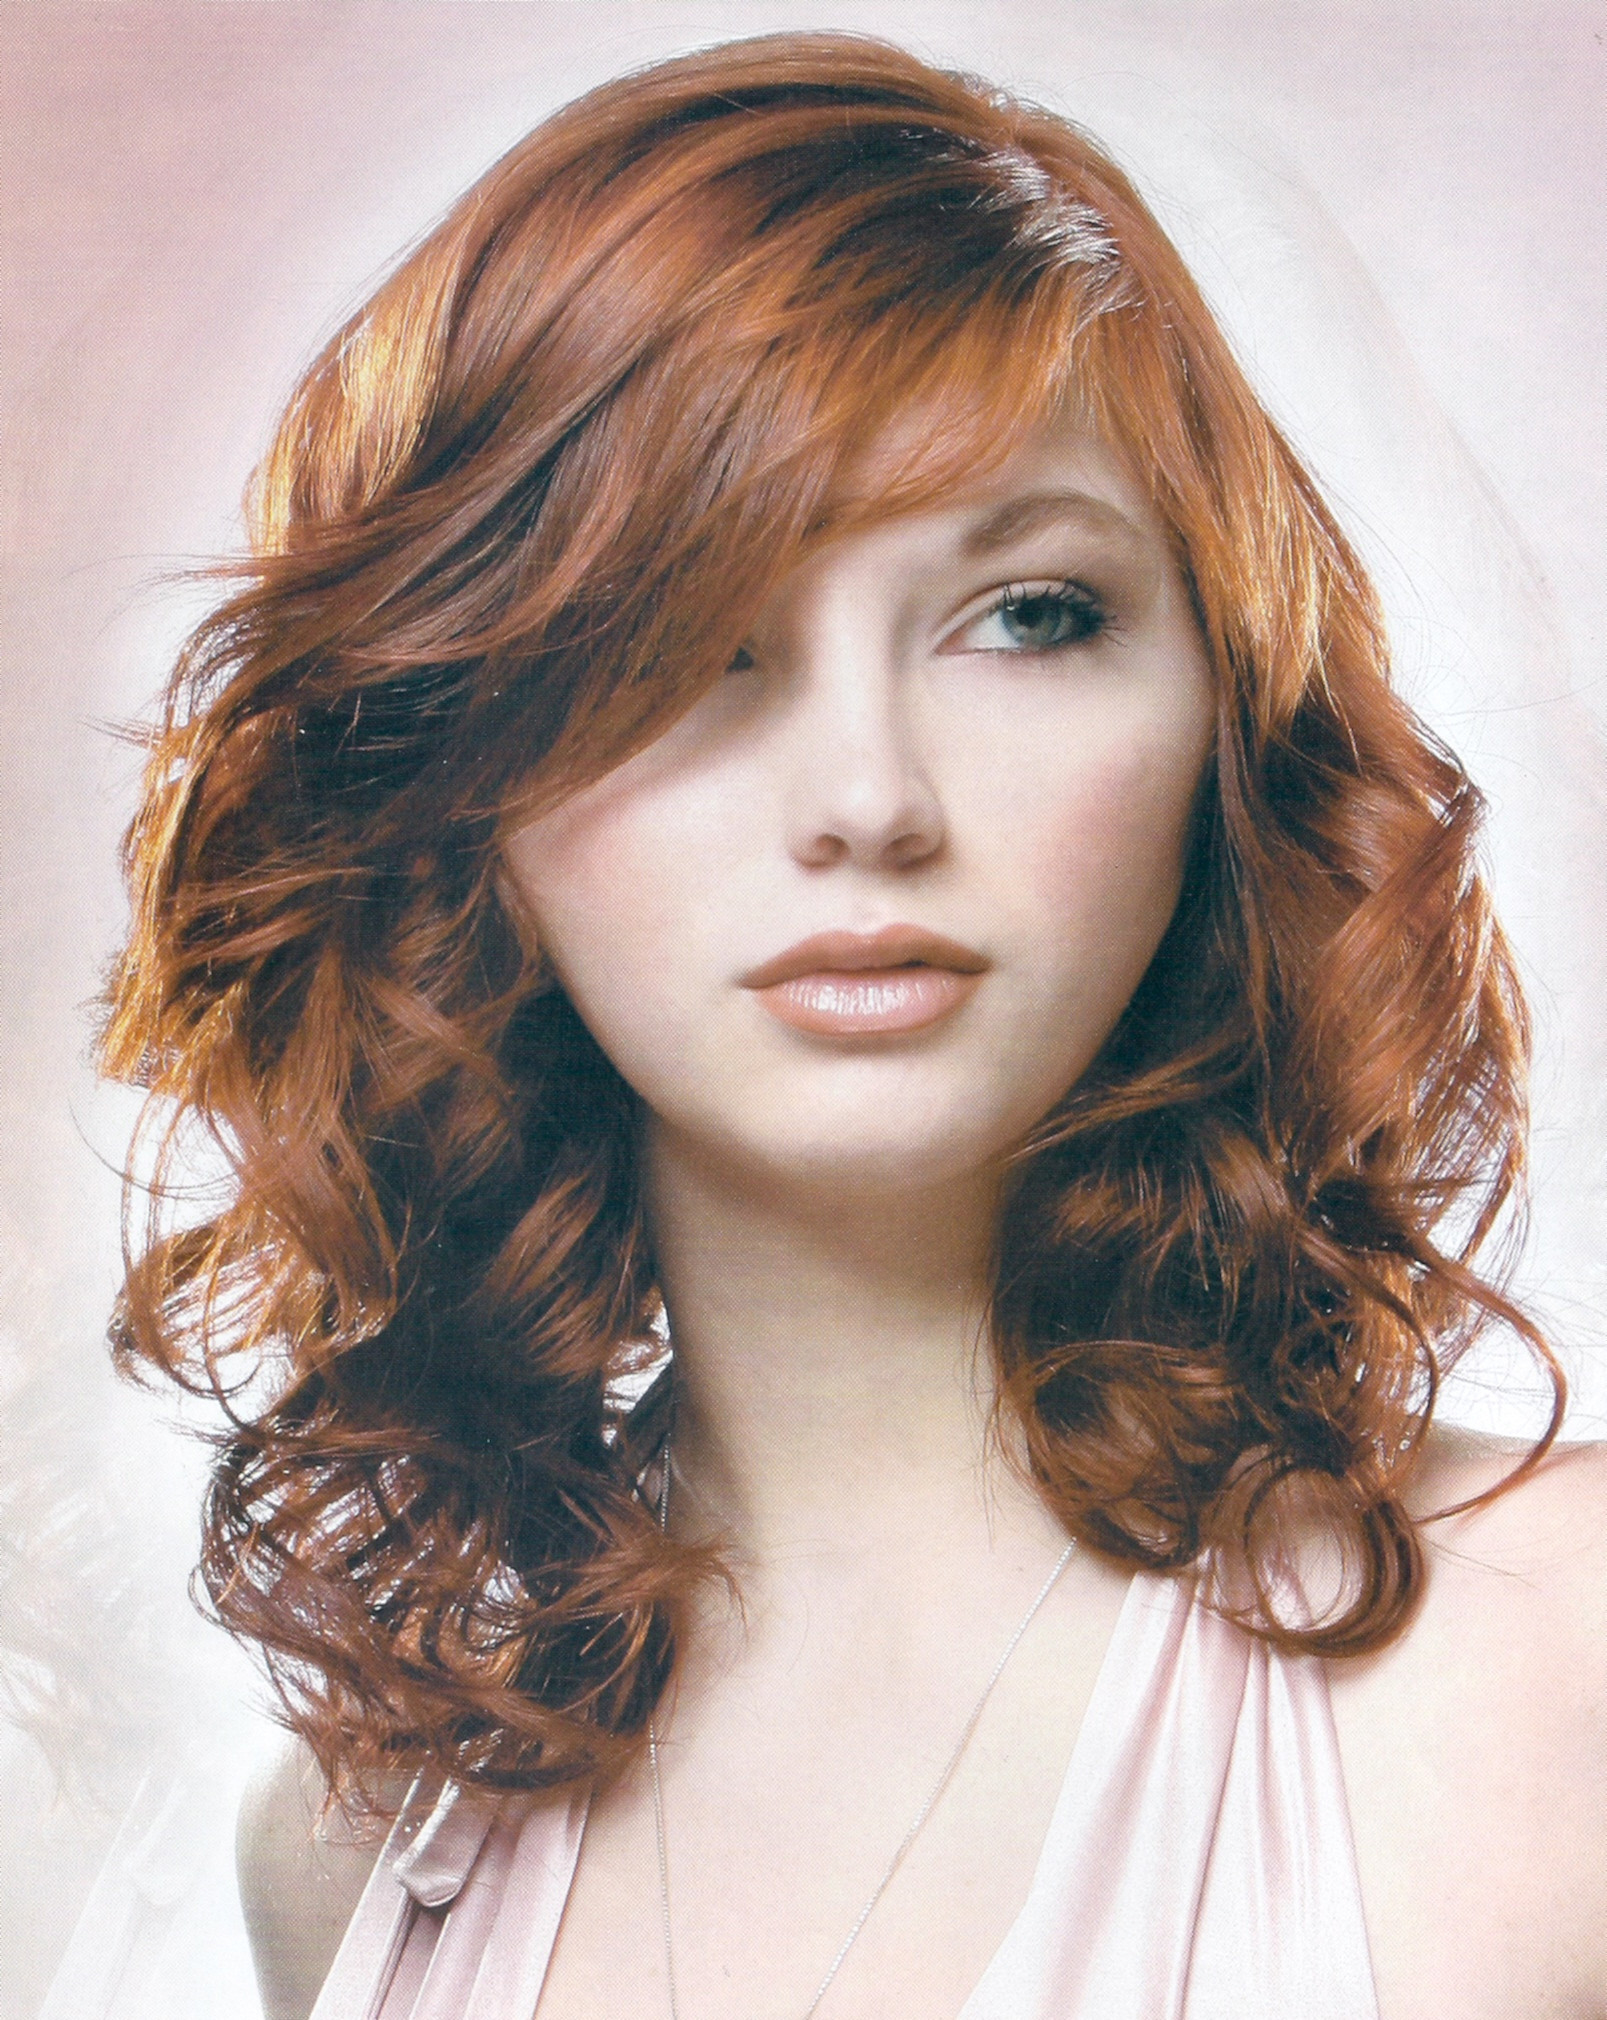 Best ideas about Hairstyle For Curly Hair Girl . Save or Pin 20 Beautiful Curly Hairstyles for Women MagMent Now.